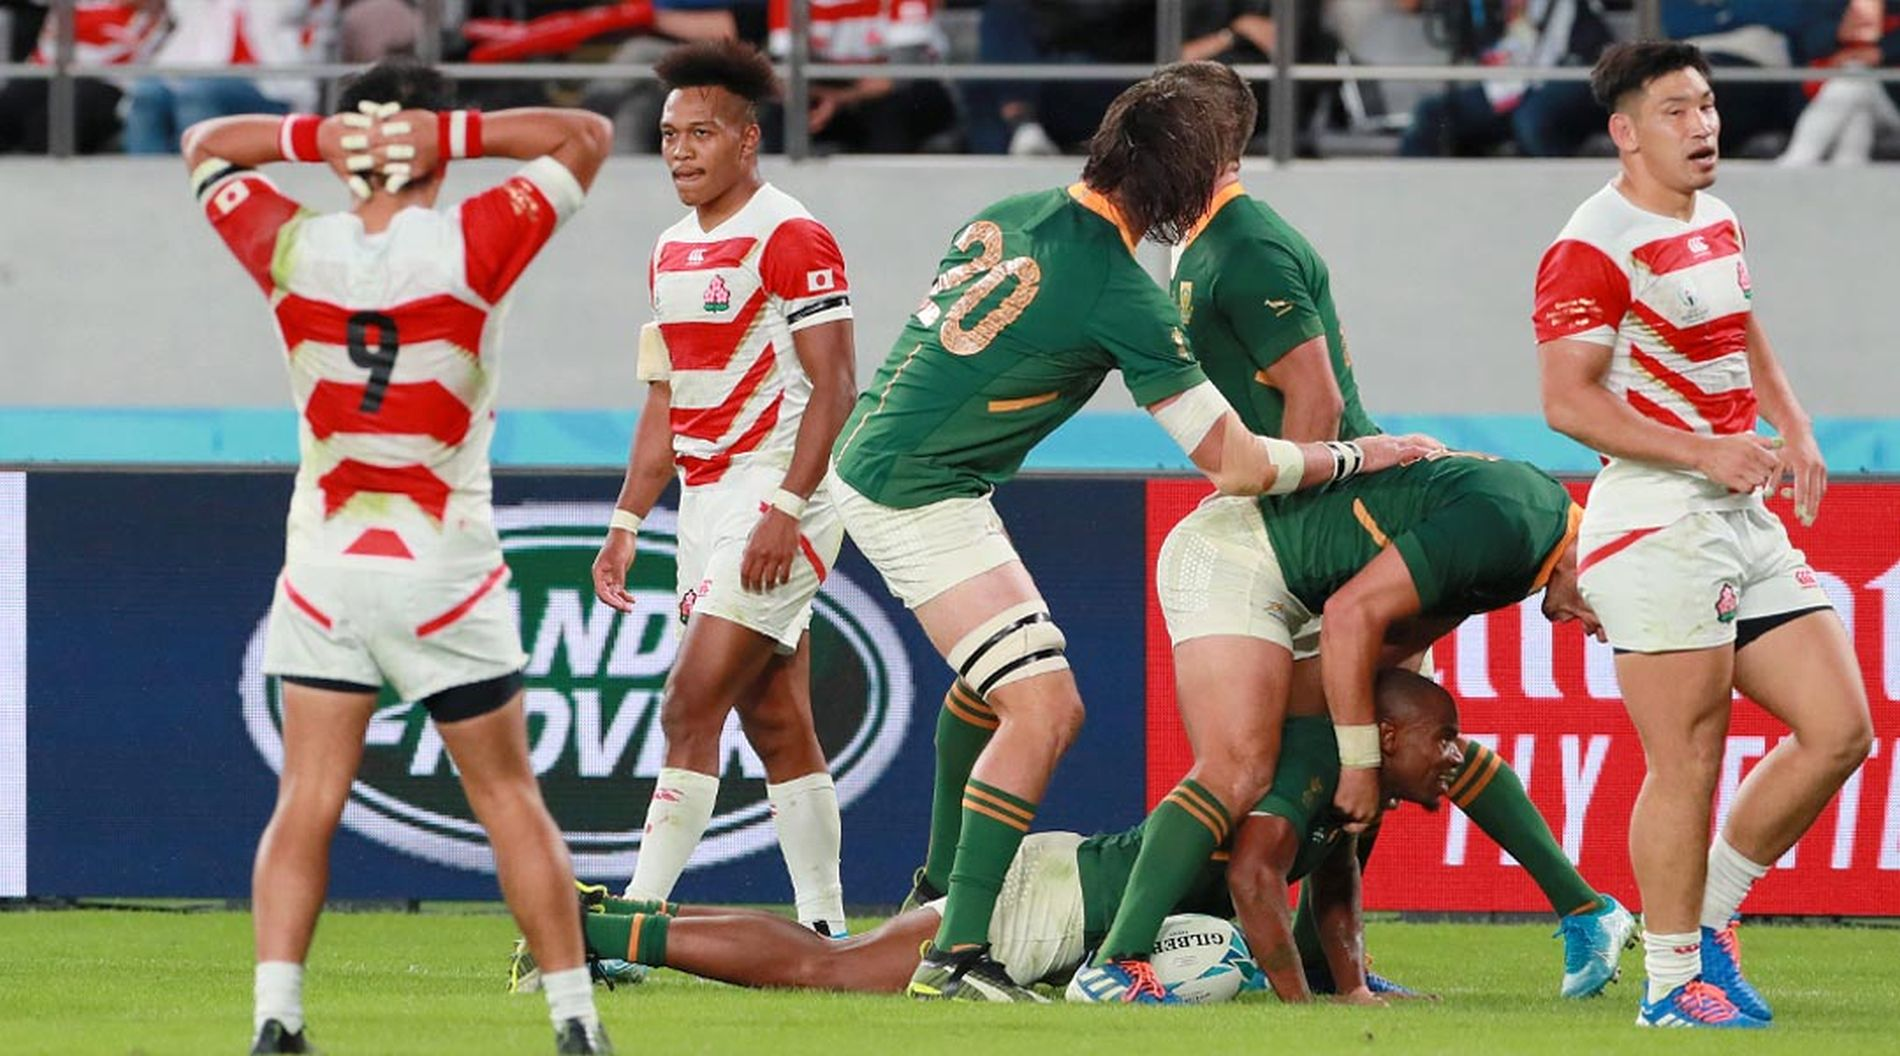 South Africa Ends Japan's One Team Winning Streak to Move On to 5th RWC Semi-Final